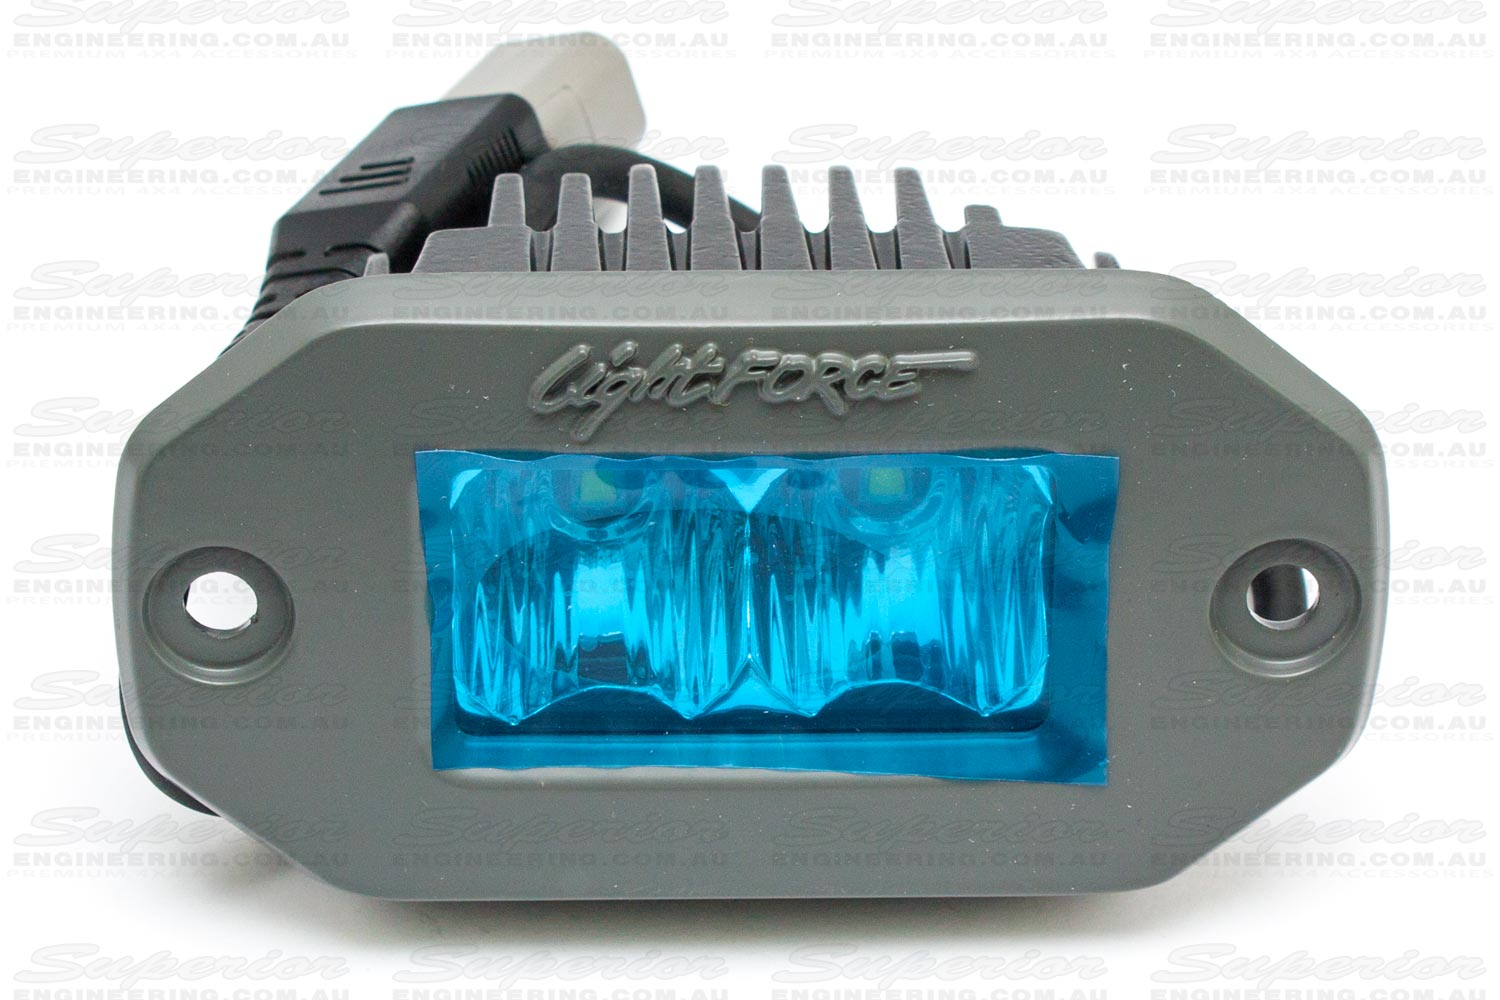 Front closeup view of the Lightforce ROK20 LED light on a plain white background